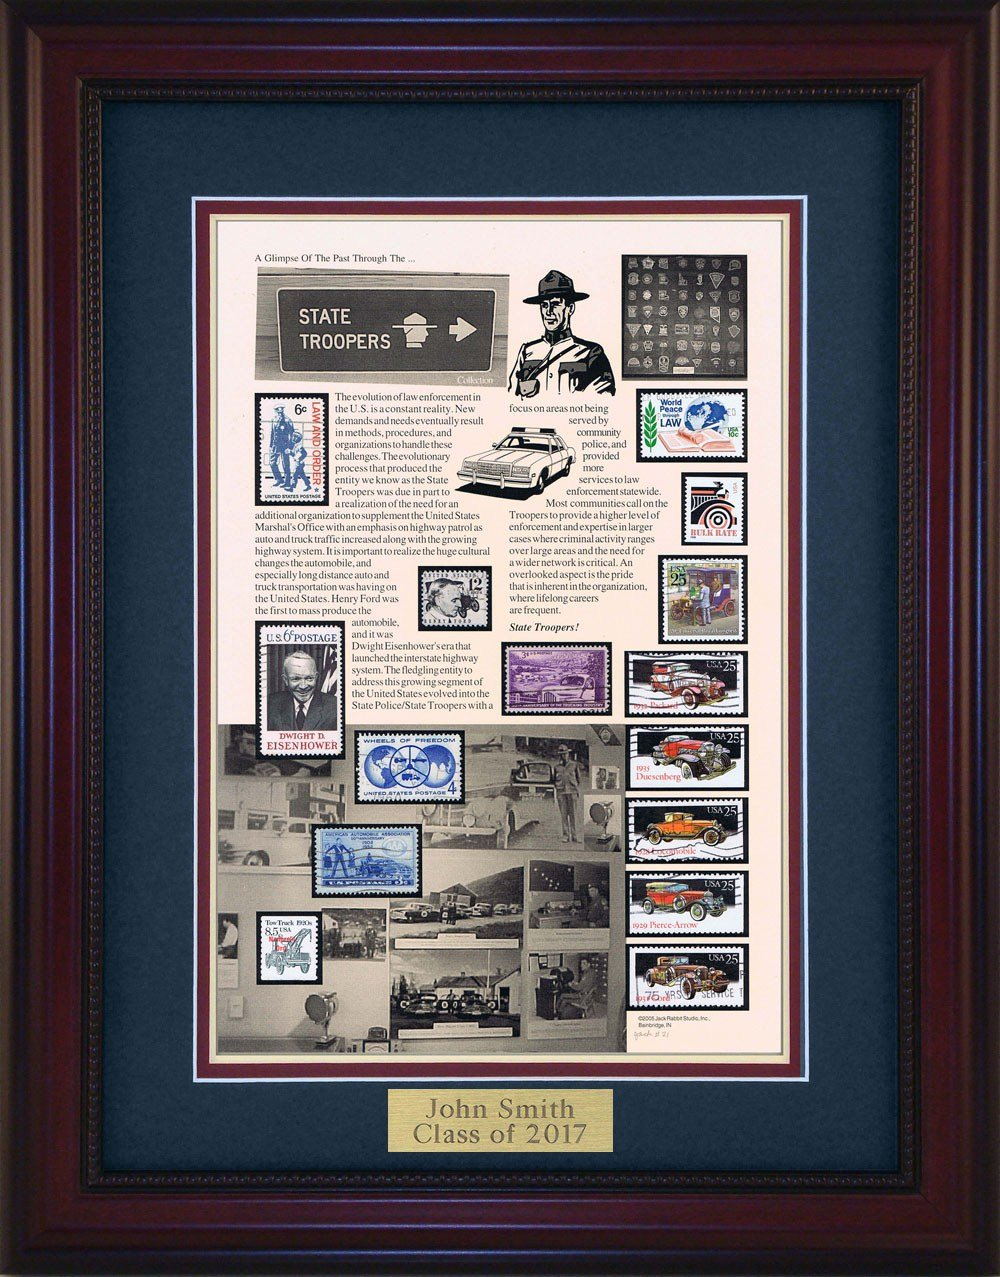 State Trooper - Unique Framed Collectible (A Great Gift Idea) with Personalized Engraved Plate